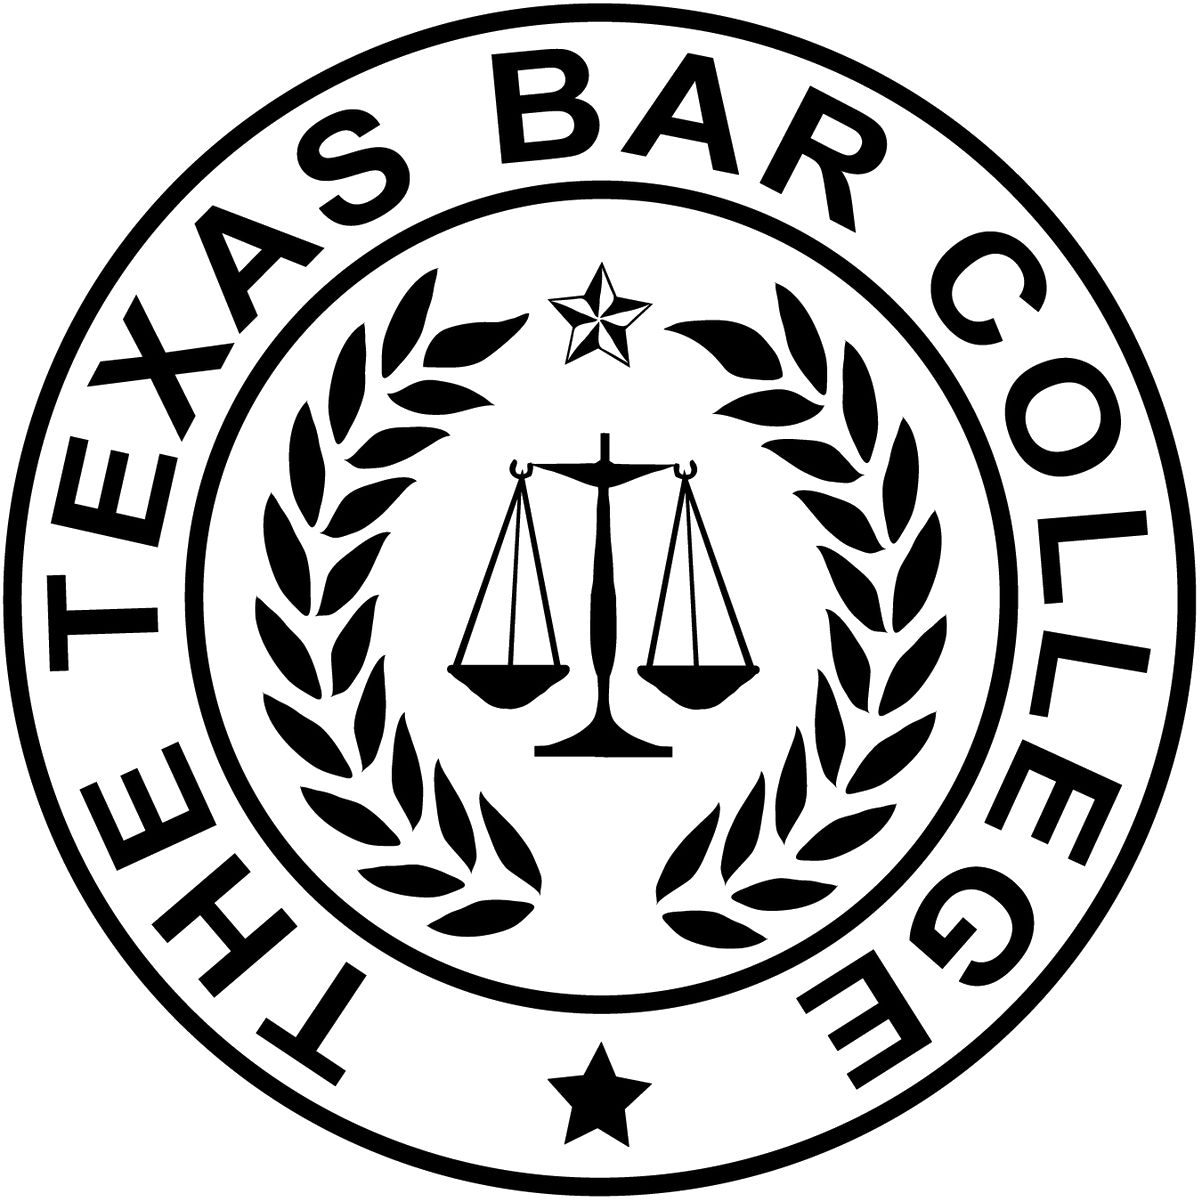 One Of 16 Members Of The Texas Bar College In Ca Federal Income Tax Volkswagen Logo Data Gathering